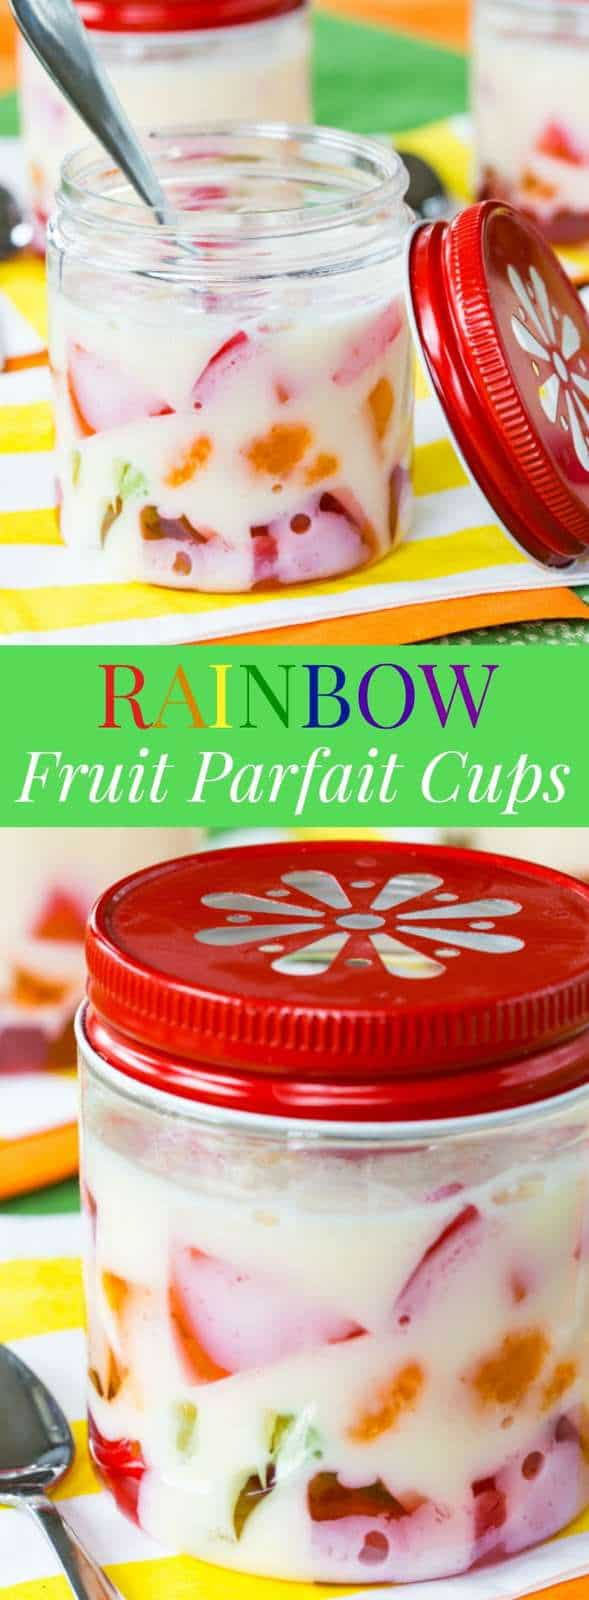 Rainbow Gel Fruit Parfait Cups - a fun treat made easy with @dolesunshine. Perfect for St. Patrick's Day, Easter, birthday, and spring! #ad